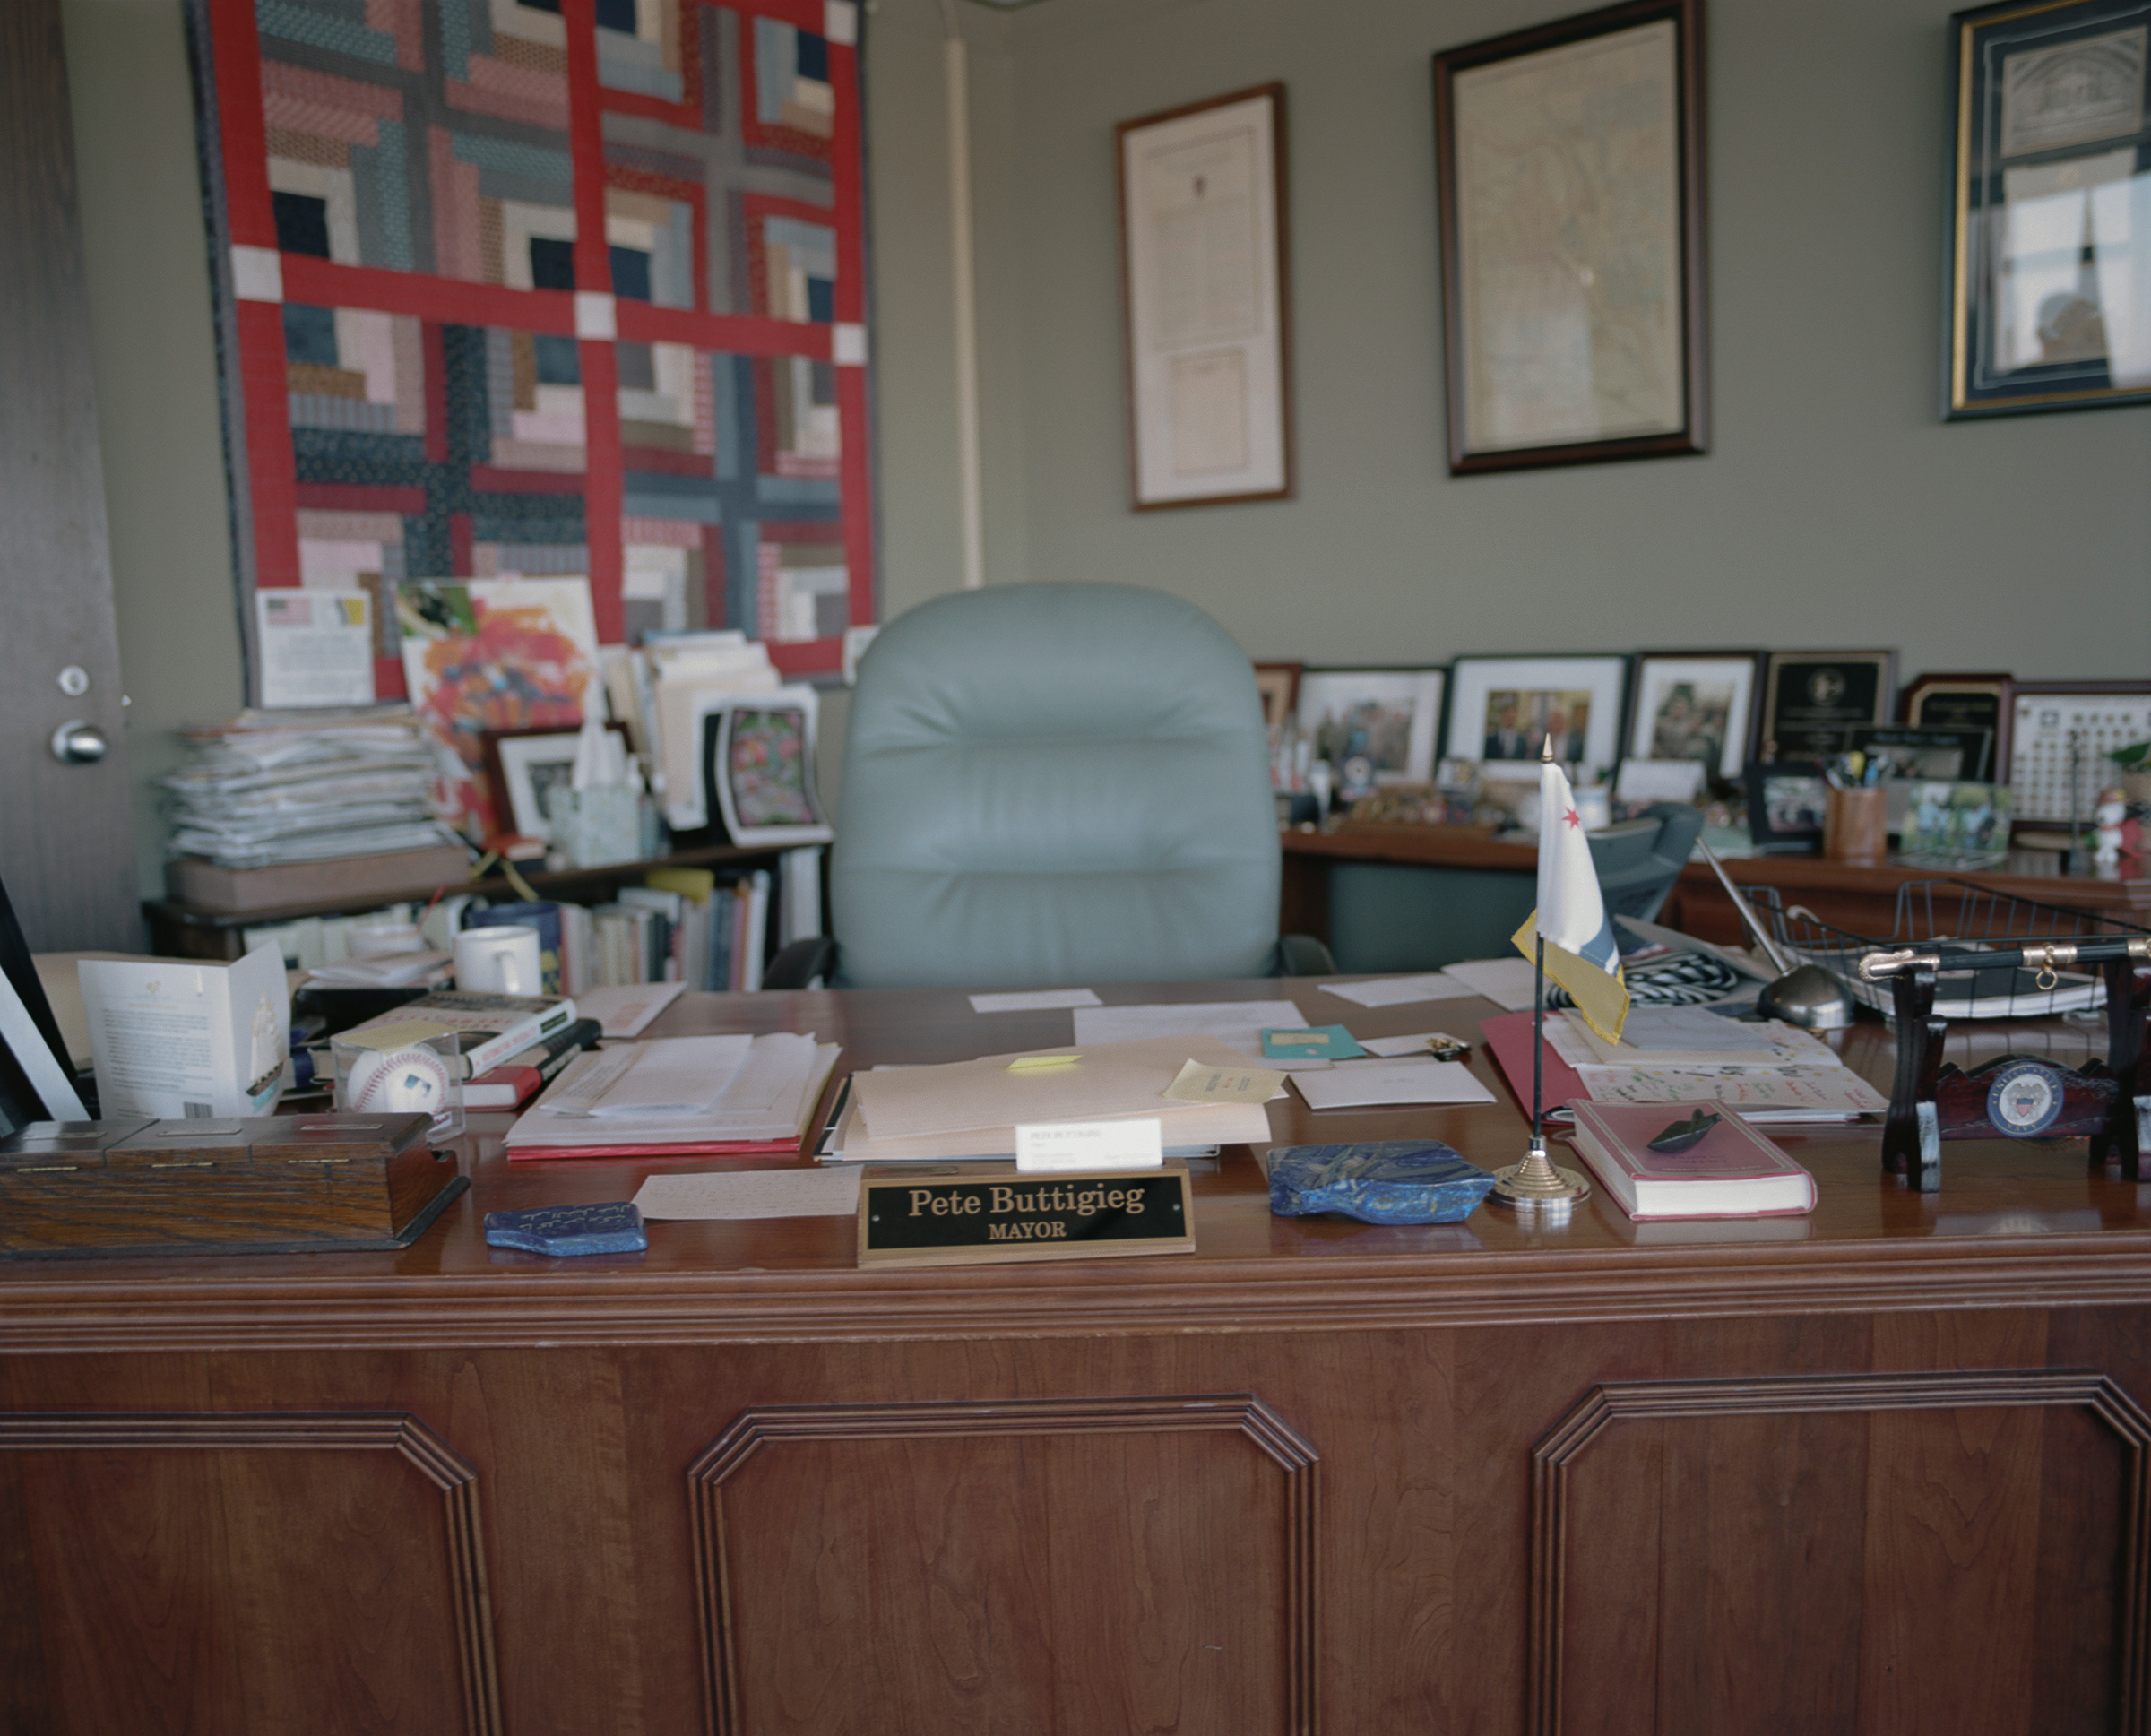 Mayor Pete Buttigieg's desk in South Bend.